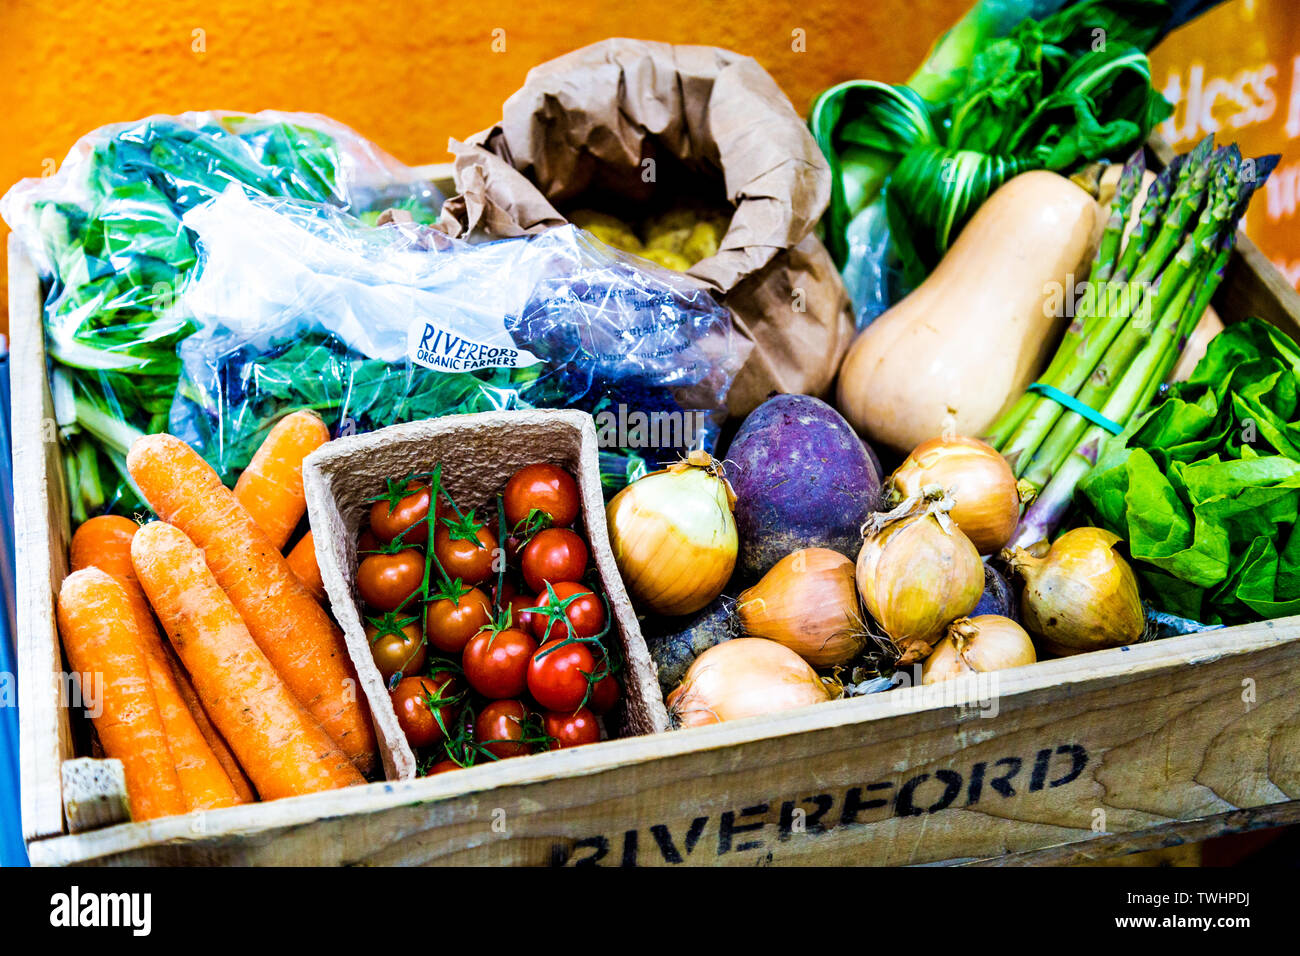 Riverford Farm organic vegetable box for home delivery, FesTeaVal